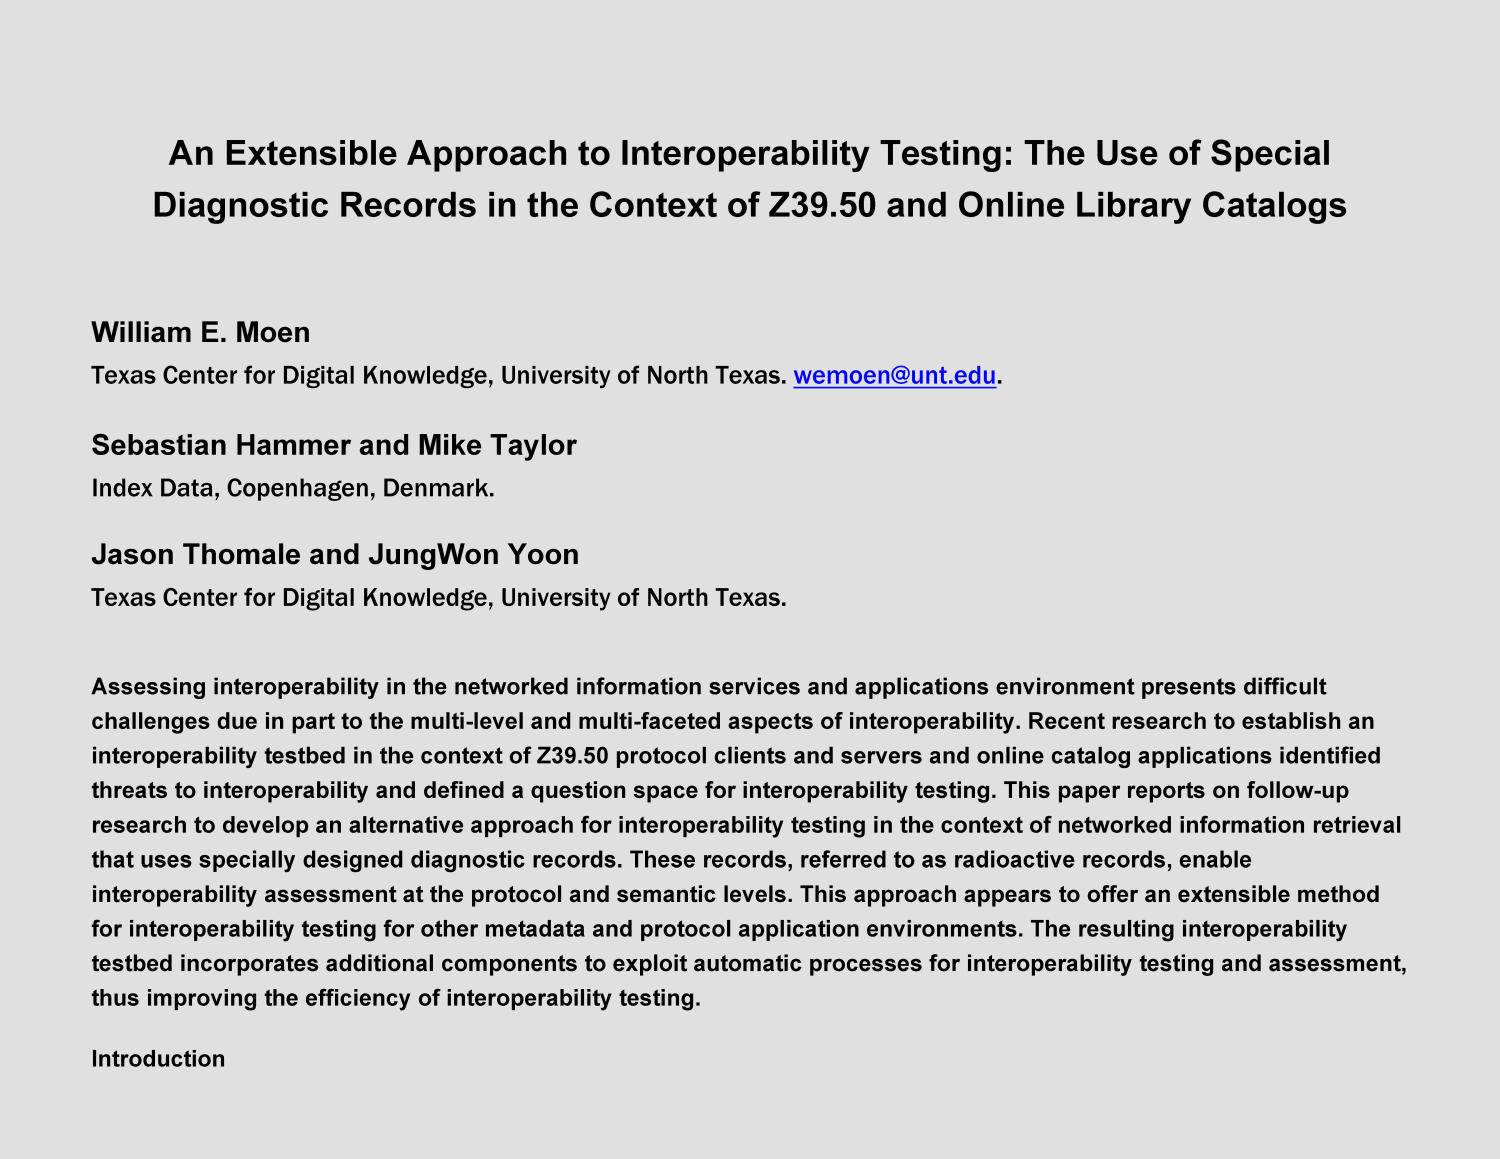 An Extensible Approach to Interoperability Testing: The Use of Special Diagnostic Records in the Context of Z39.50 and Online Library Catalogs                                                                                                      [Sequence #]: 1 of 25